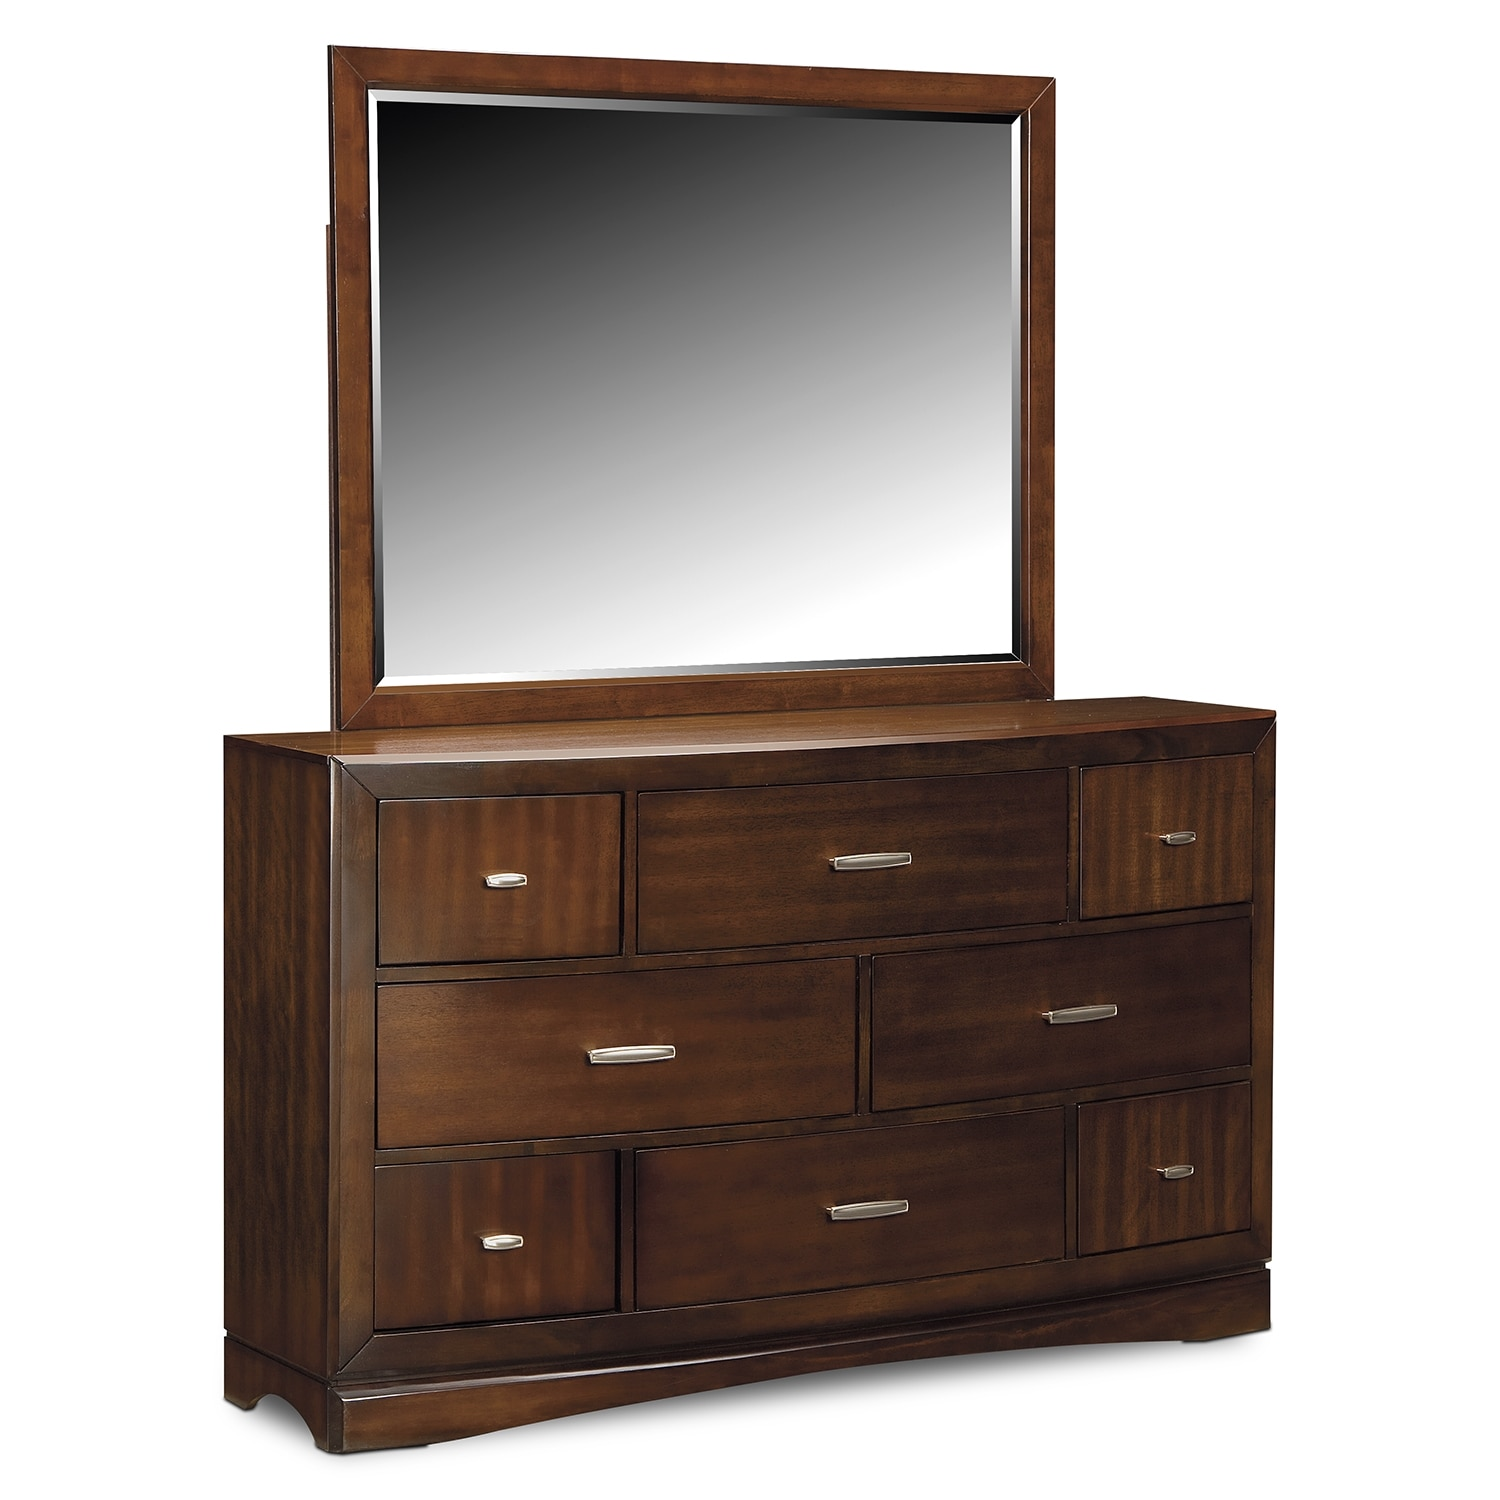 Toronto 5 Piece Queen Storage Bedroom Set Pecan